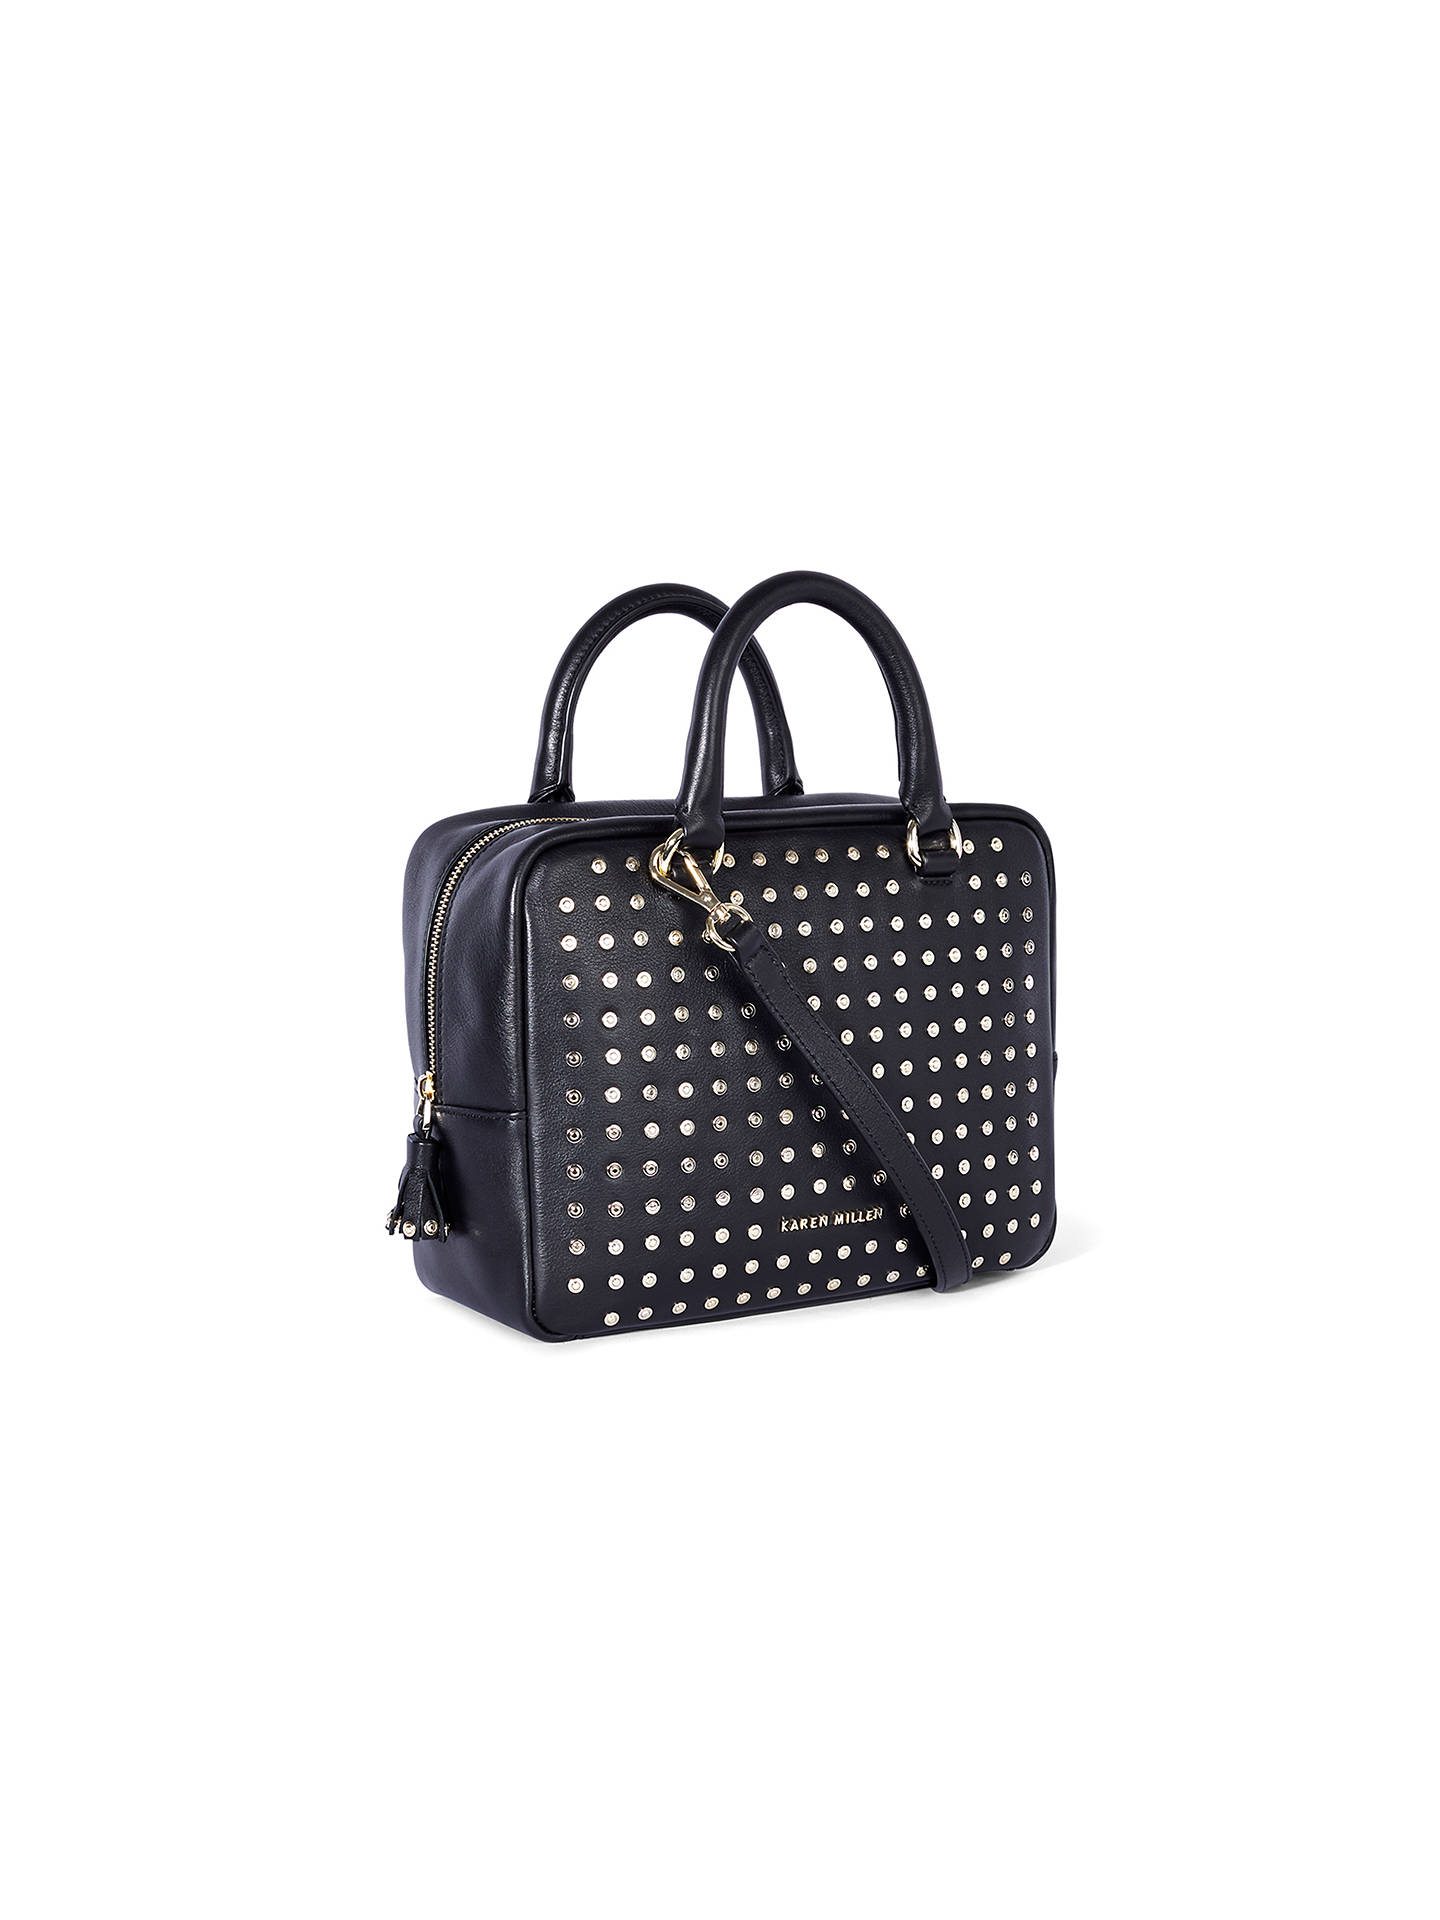 c252c4e896 ... Buy Karen Millen Large Leather Stud Bowling Bag, Black Online at  johnlewis.com ...